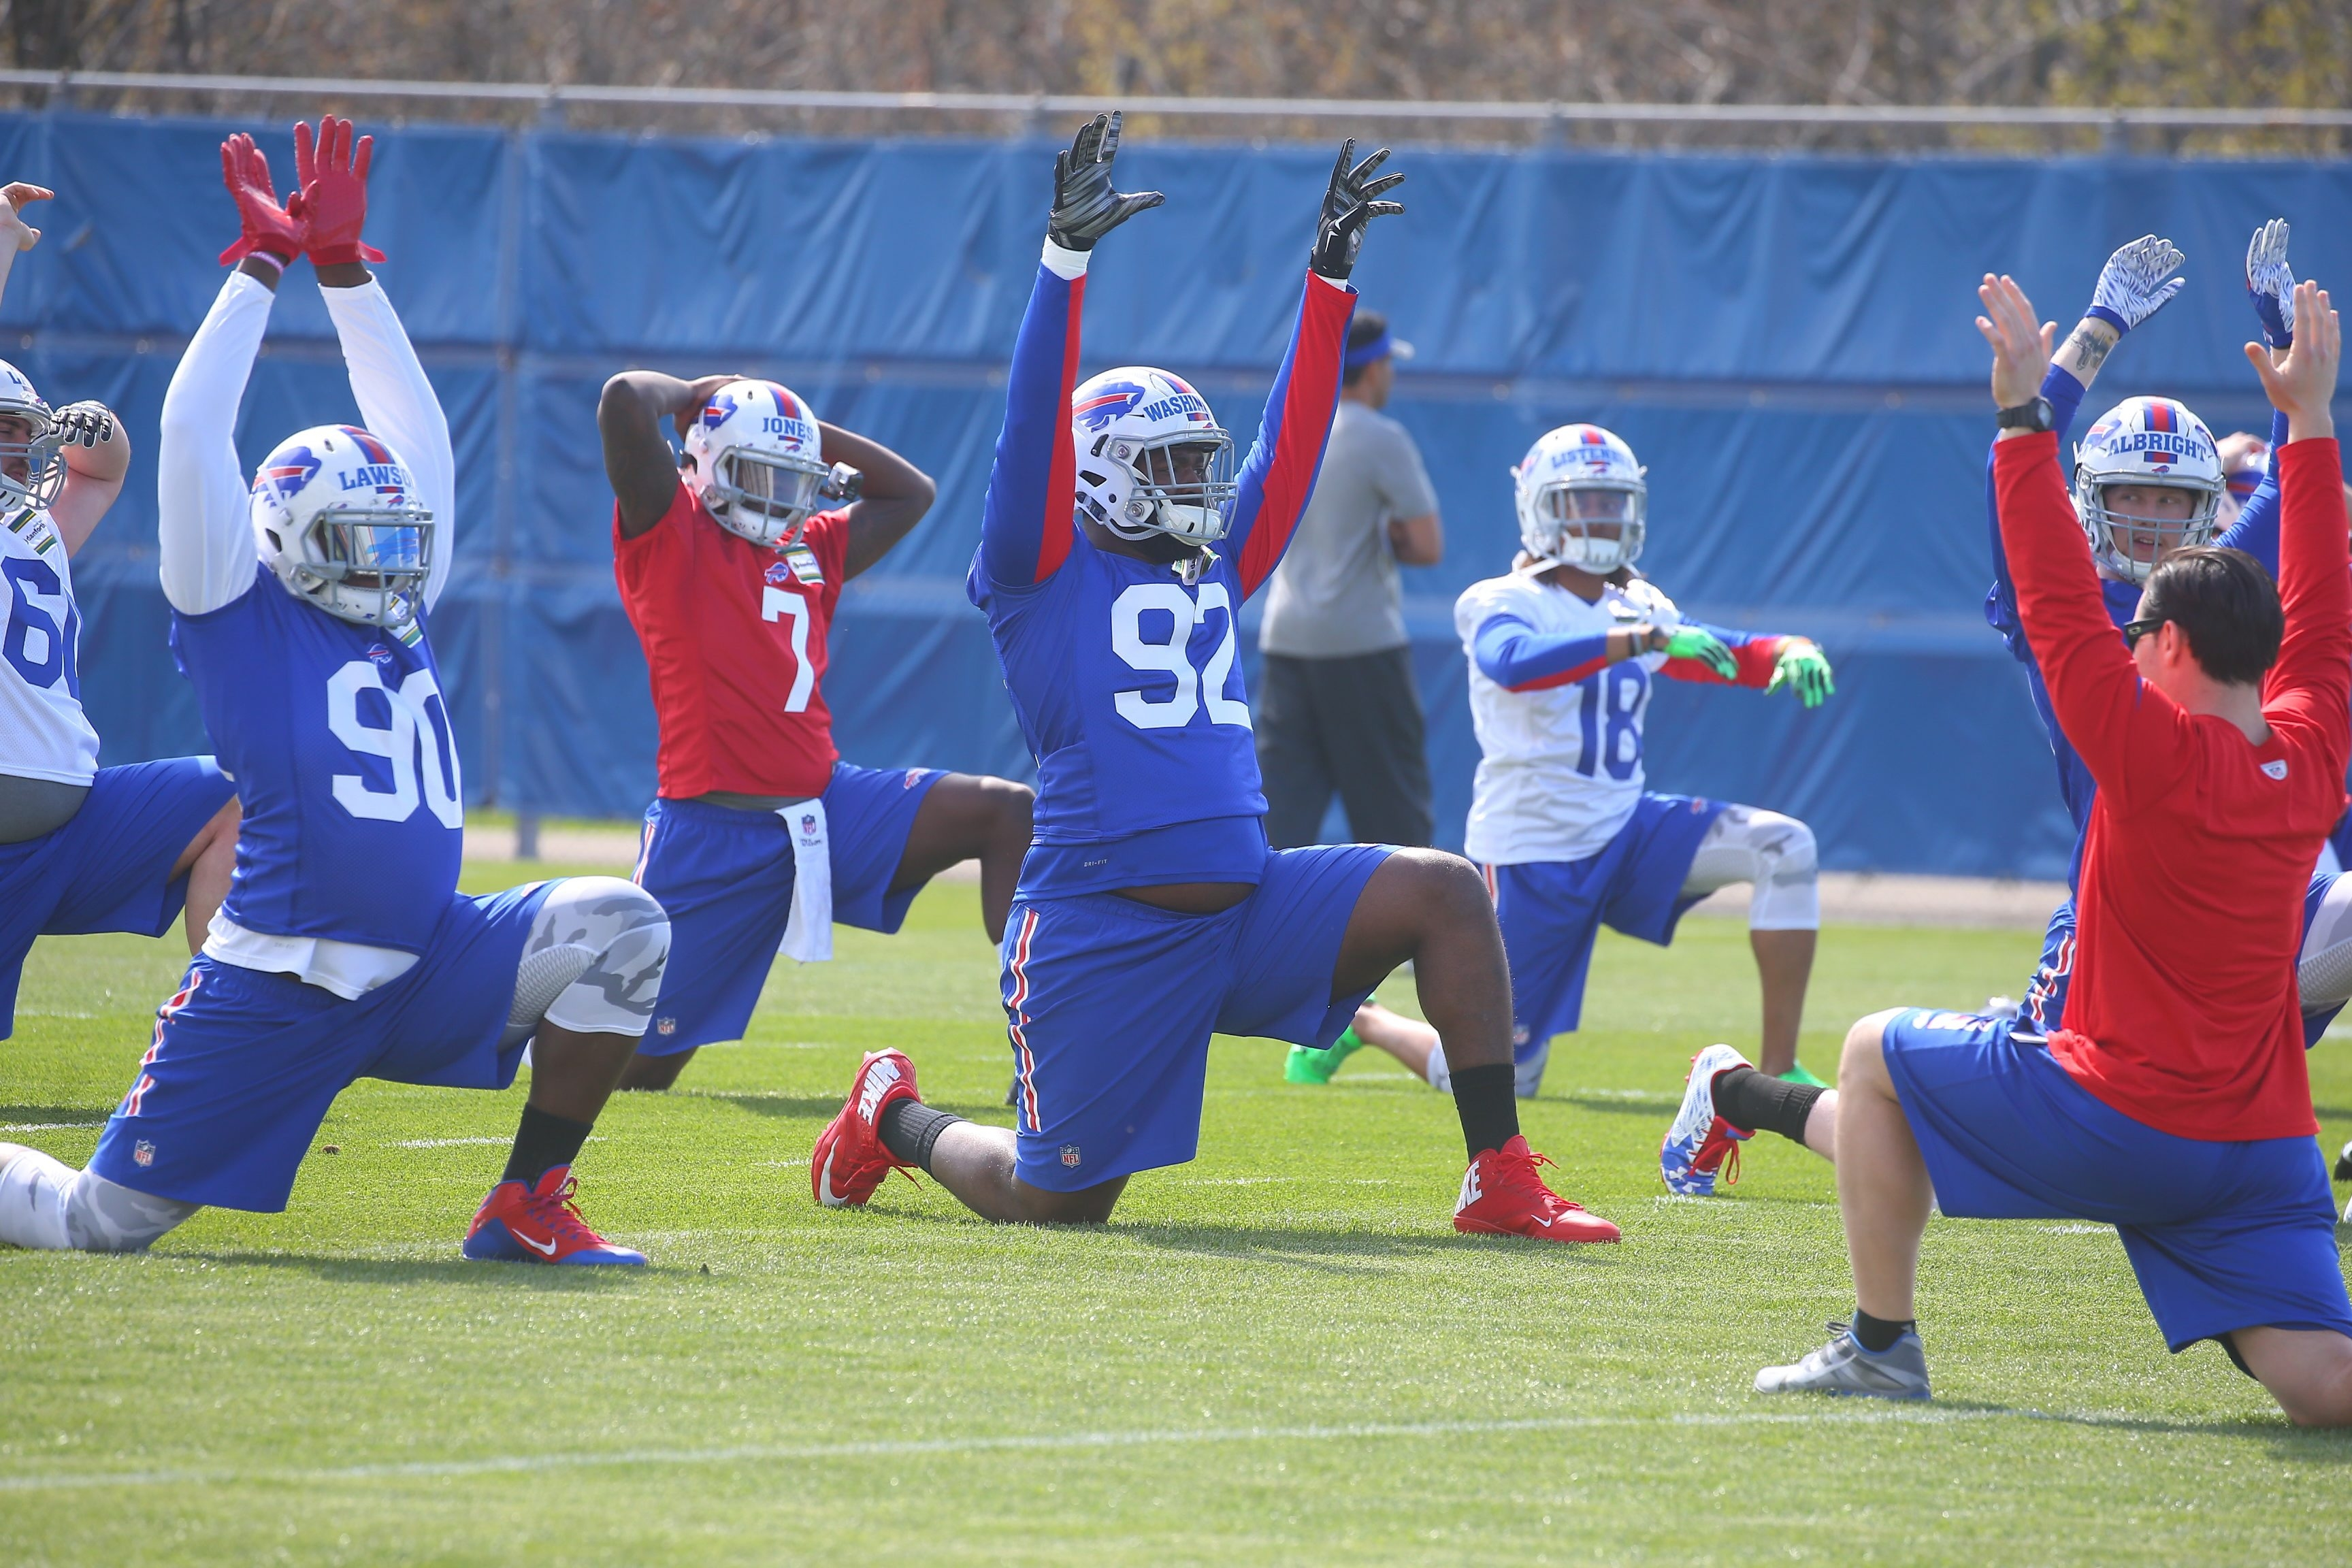 Buffalo Bills defensive end Shaq Lawson (90), and Bills defensive tackle Adolphus Washington (92) stretch at Bills rookie camp at the grass practice field, in Orchard Park, N.Y., on Friday May 6, 2016. (John Hickey/Buffalo News)